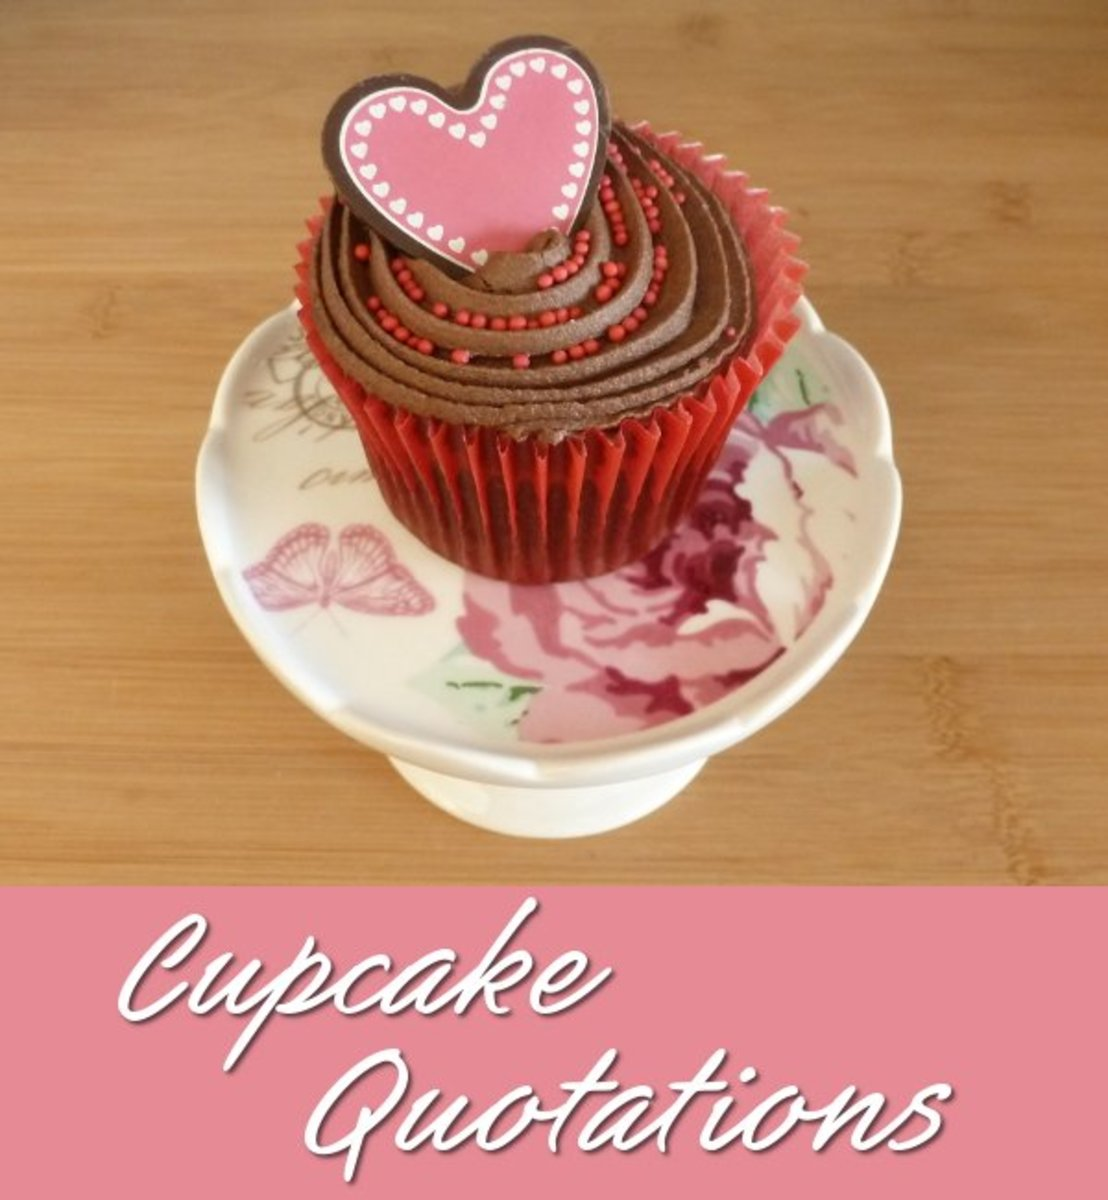 30 Cute Cupcake Quotes and Sayings